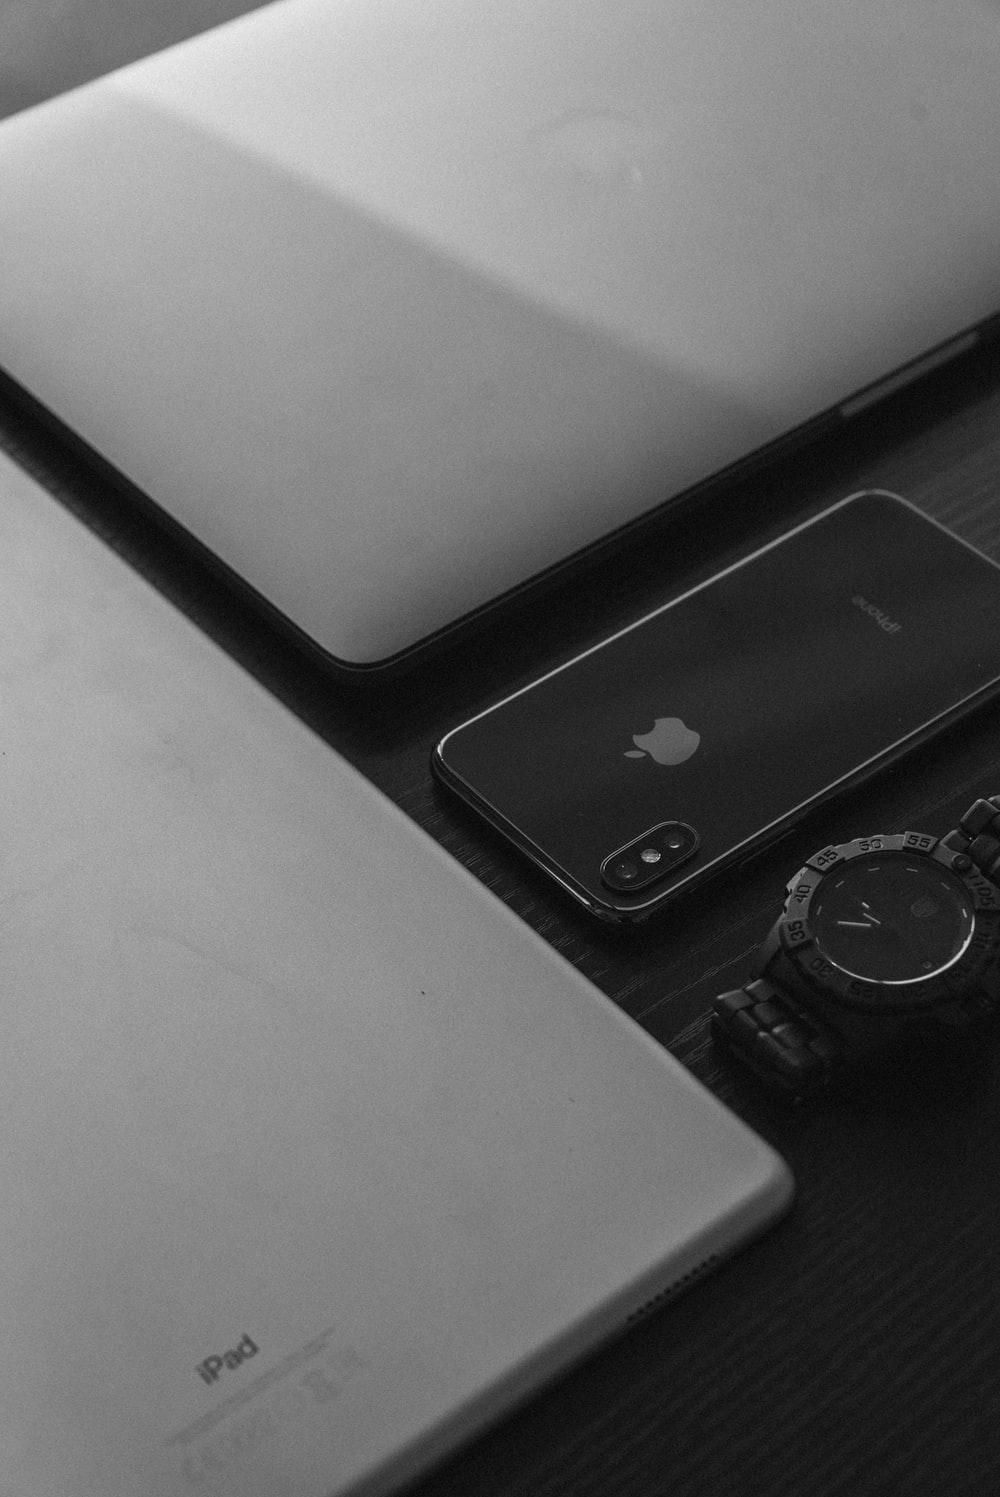 silver Apple MacBook, silver iPad, space gray iPhone X, and black analog watch